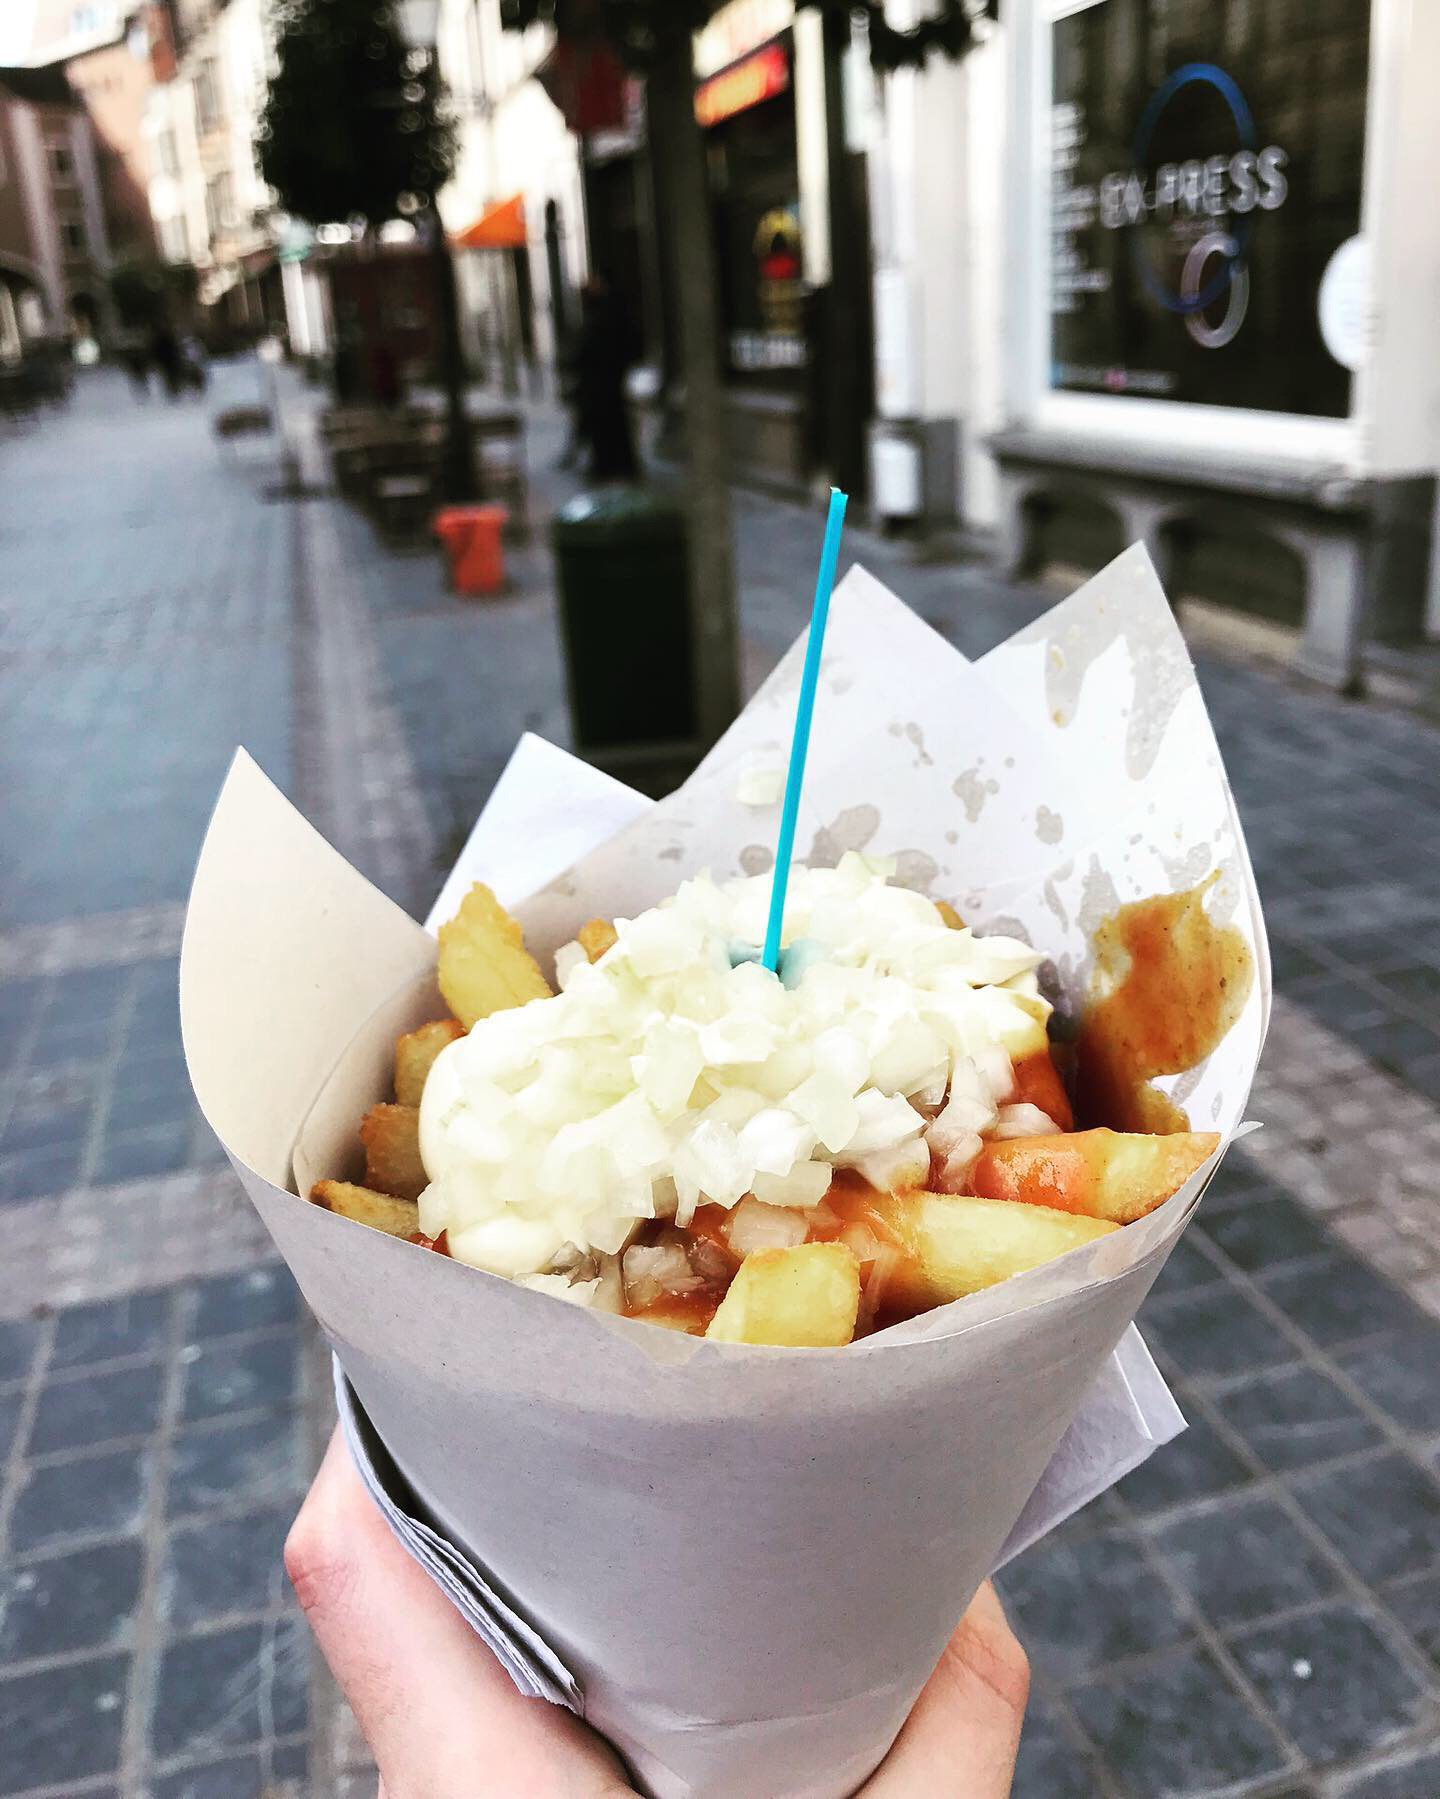 Waffle time! Hello Brussels ;)